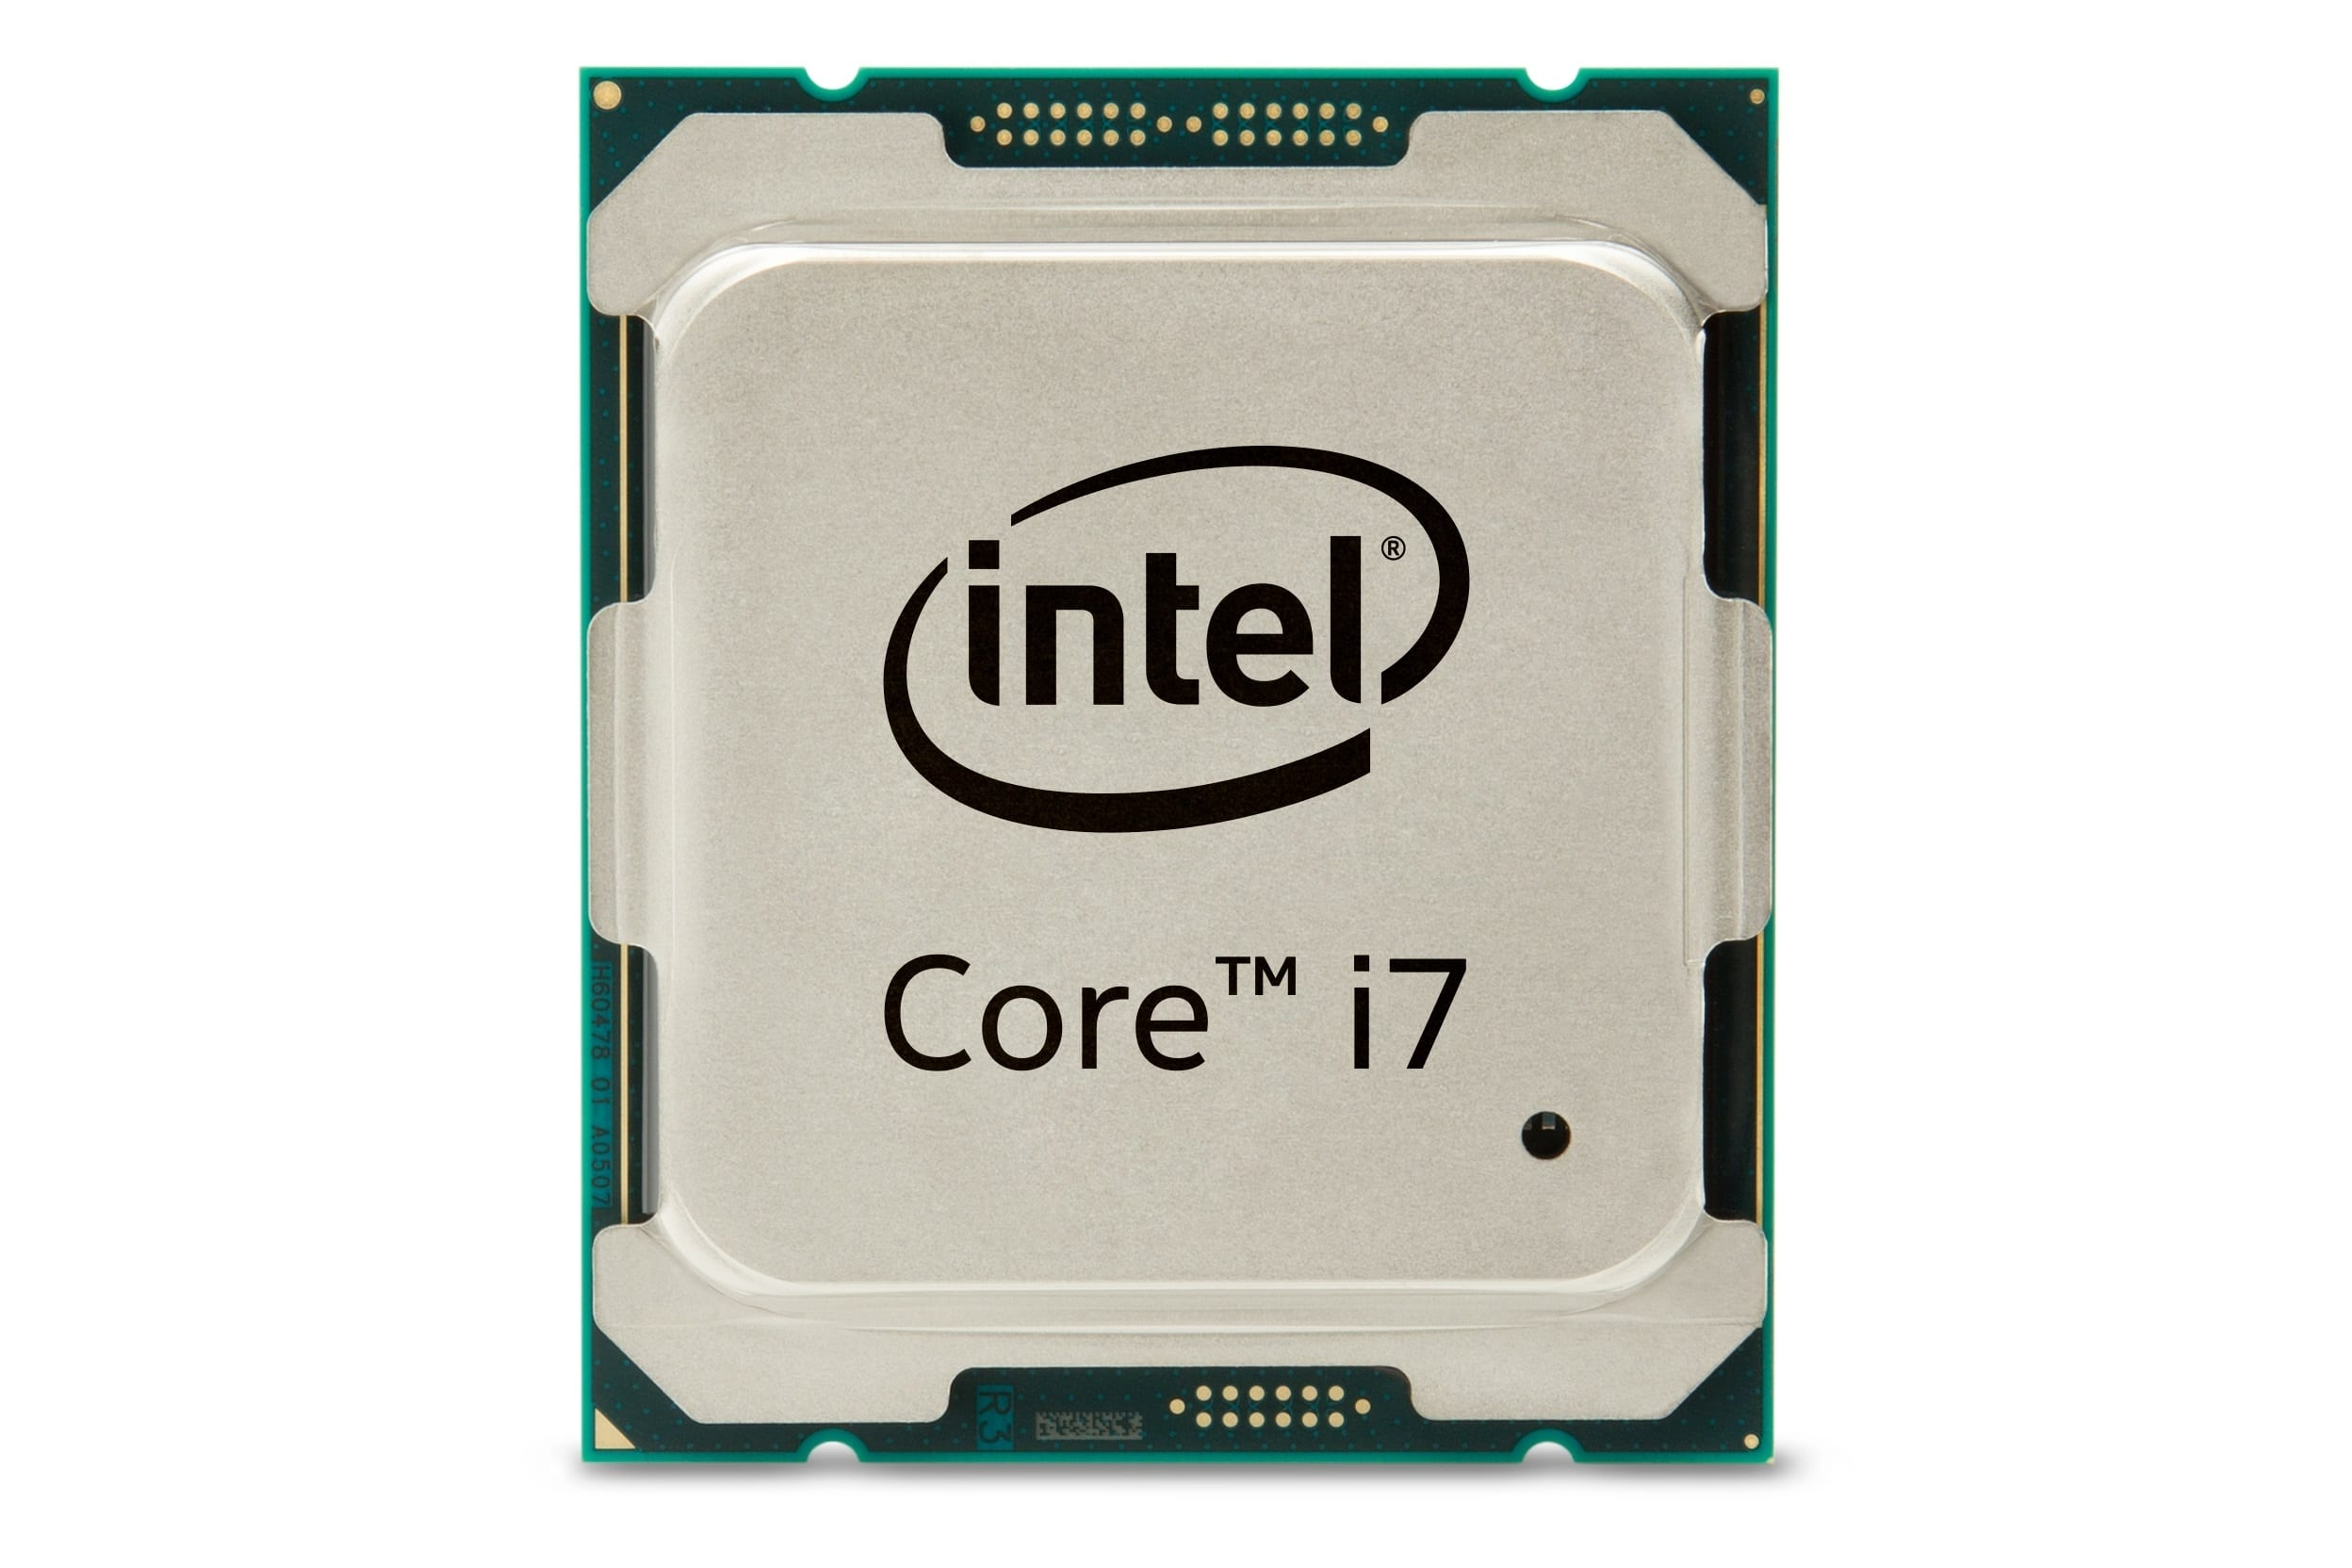 Intel Core i7-6950X gets overclocked to 5.7GHz